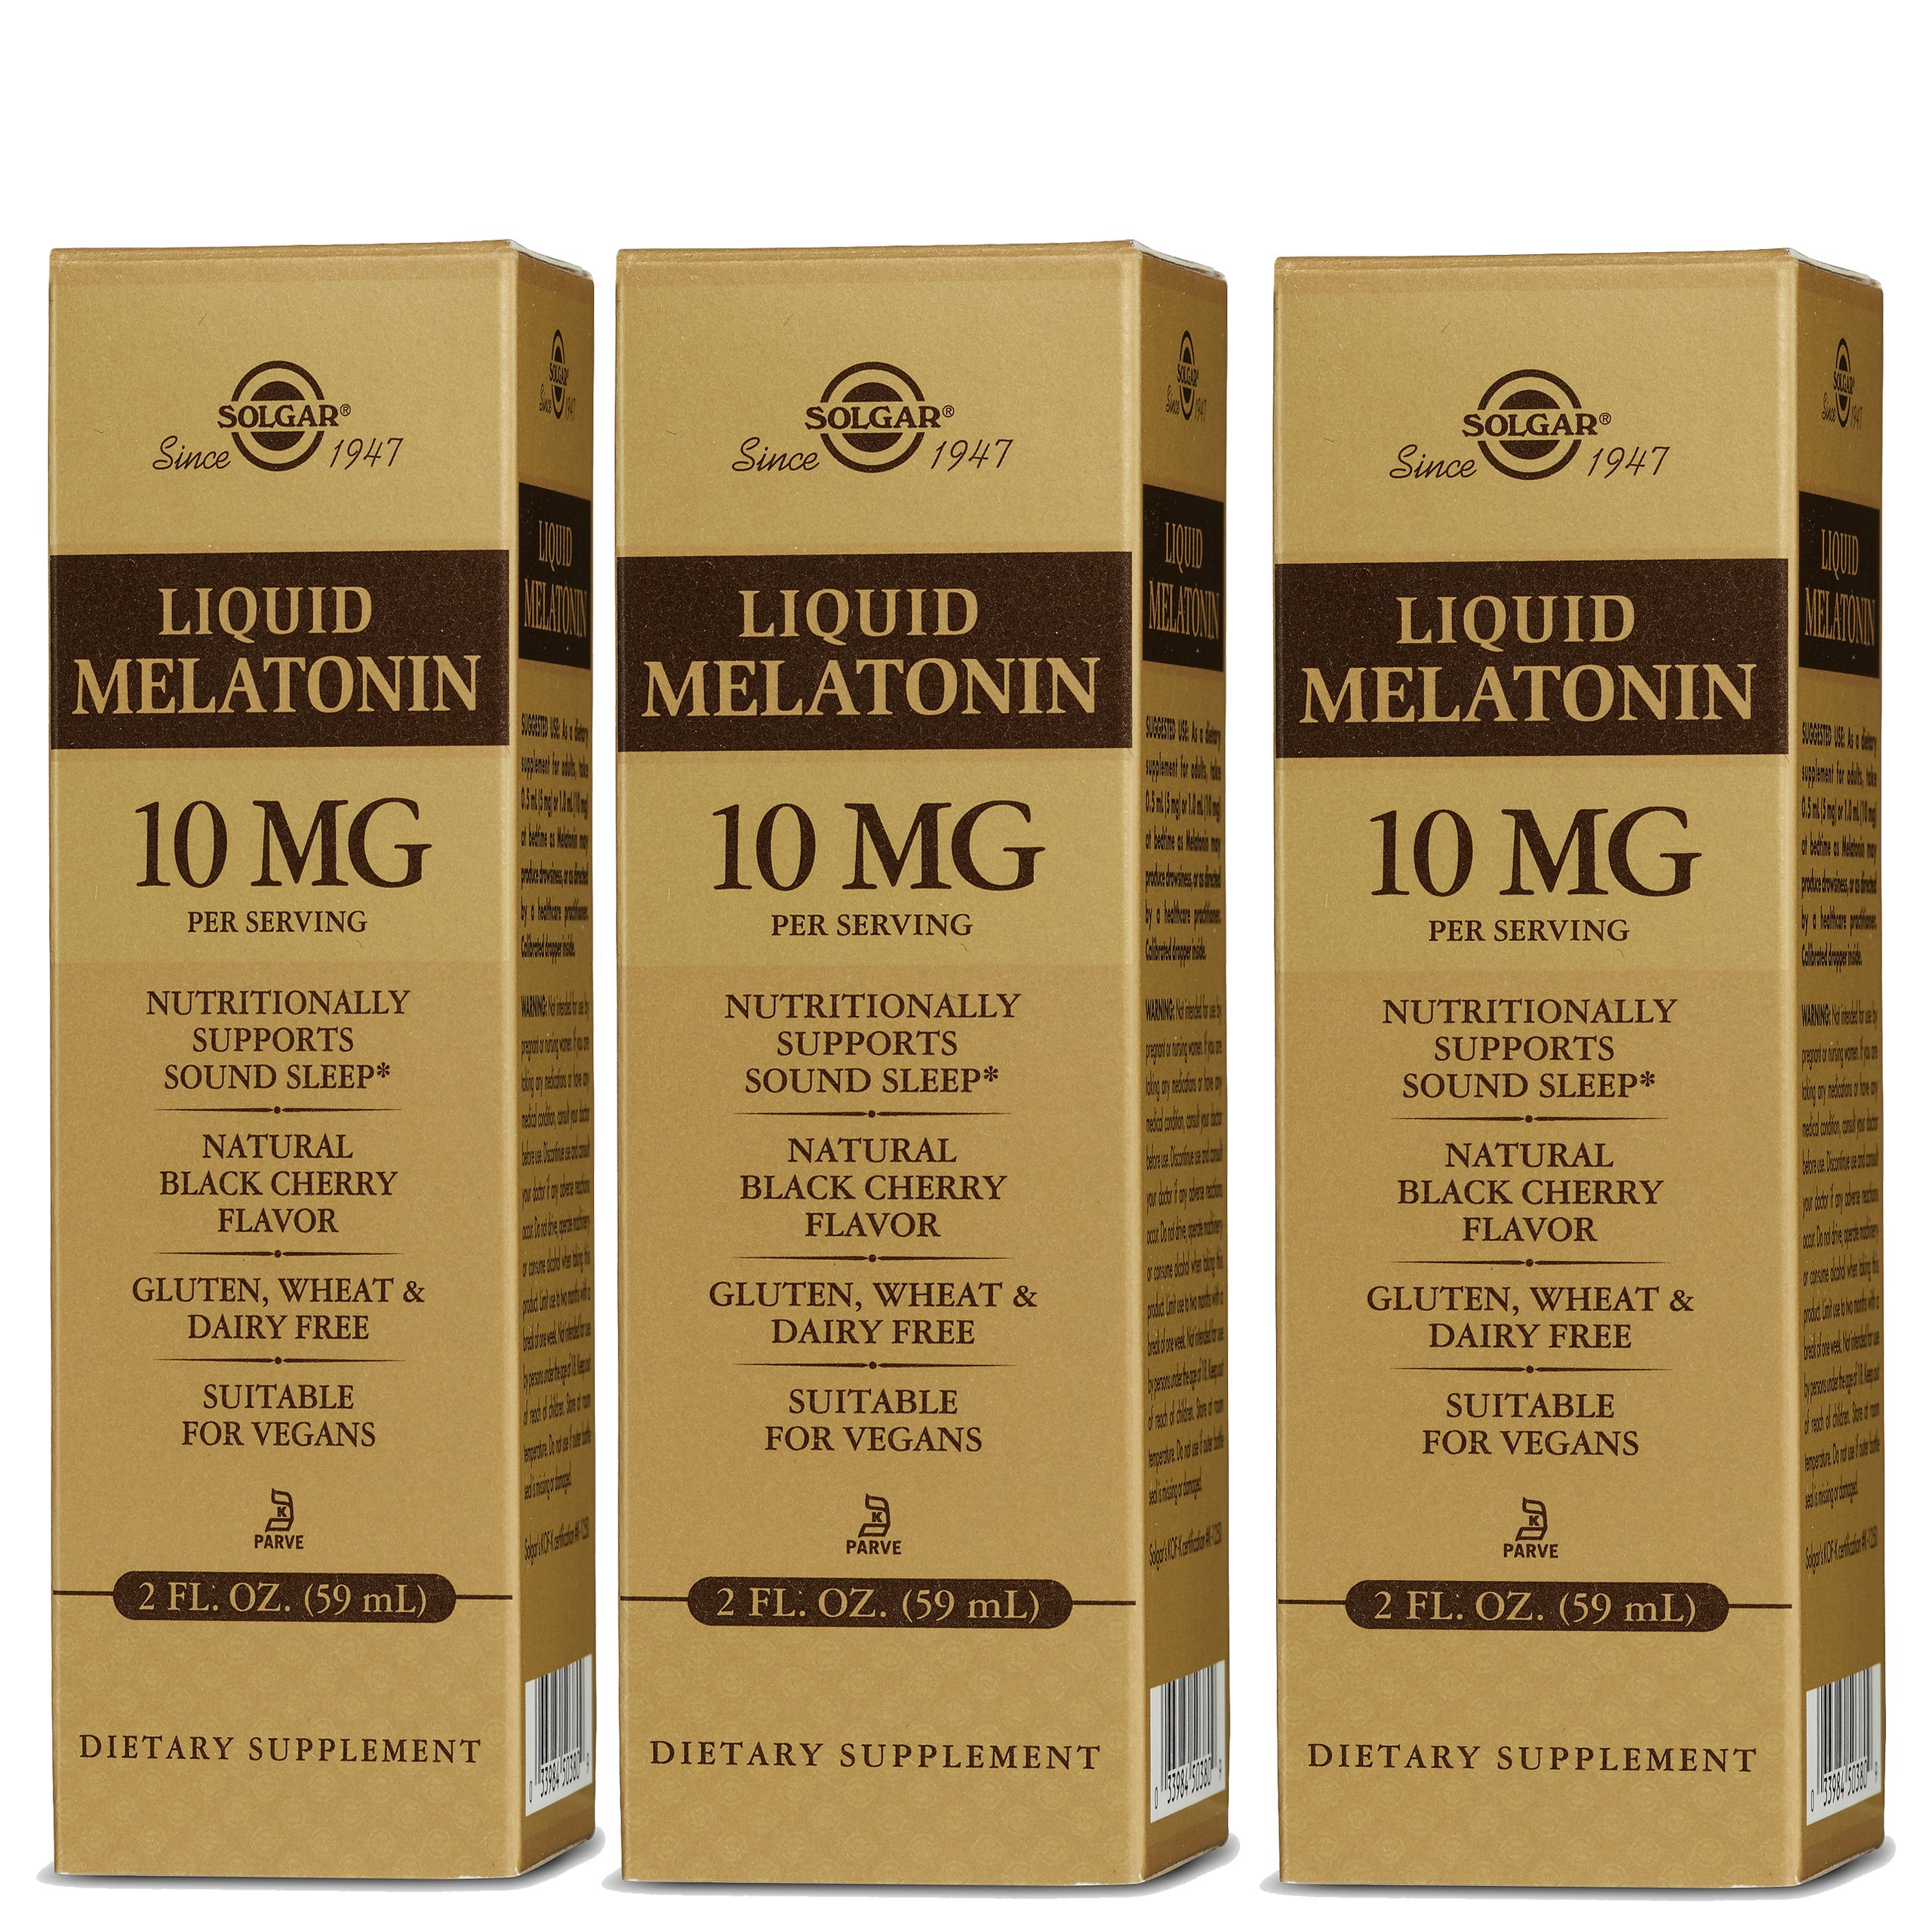 Amazon.com: Solgar – Liquid Melatonin 10 mg, 2 Oz, Natural Black Cherry Flavor (3 Bottles): Health & Personal Care